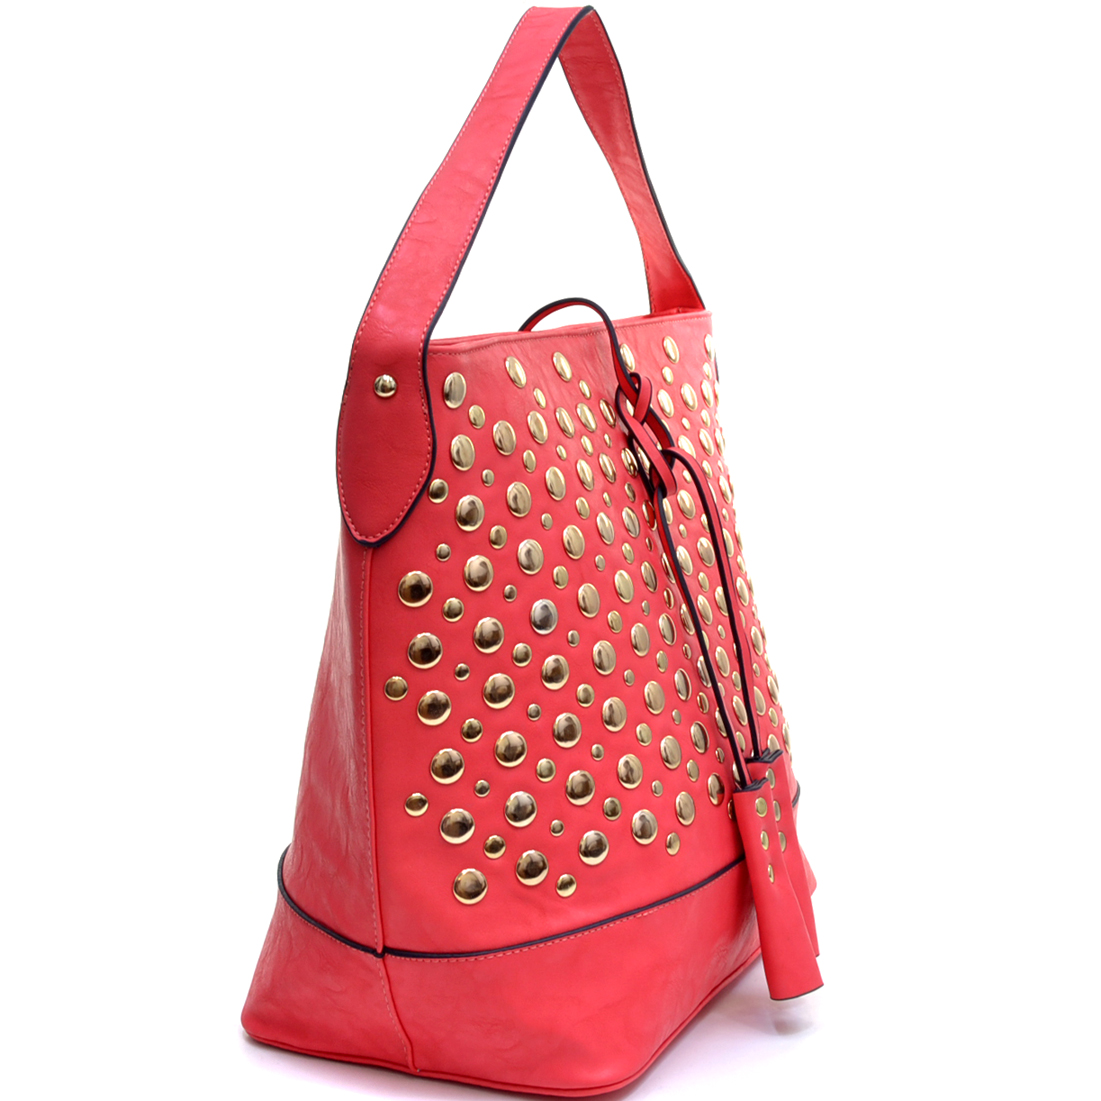 Tassel Droplet Studded Tote Bag With Flat Bottom Design